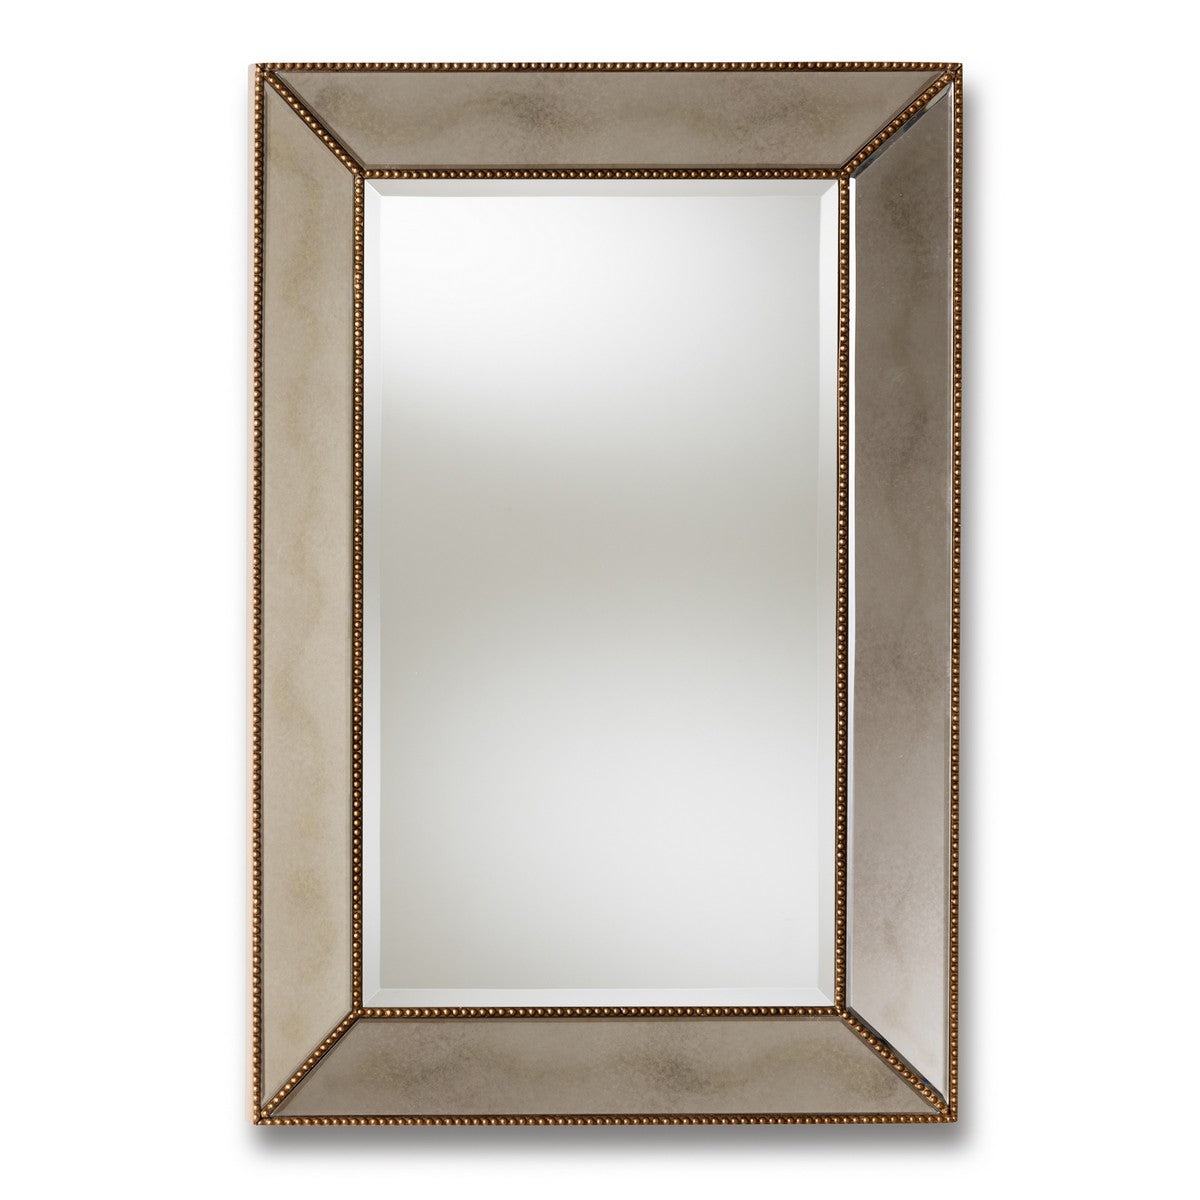 Baxton Studio Neva Modern and Contemporary Antique Gold Finished Rectangular Accent Wall Mirror Baxton Studio-mirrors-Minimal And Modern - 1